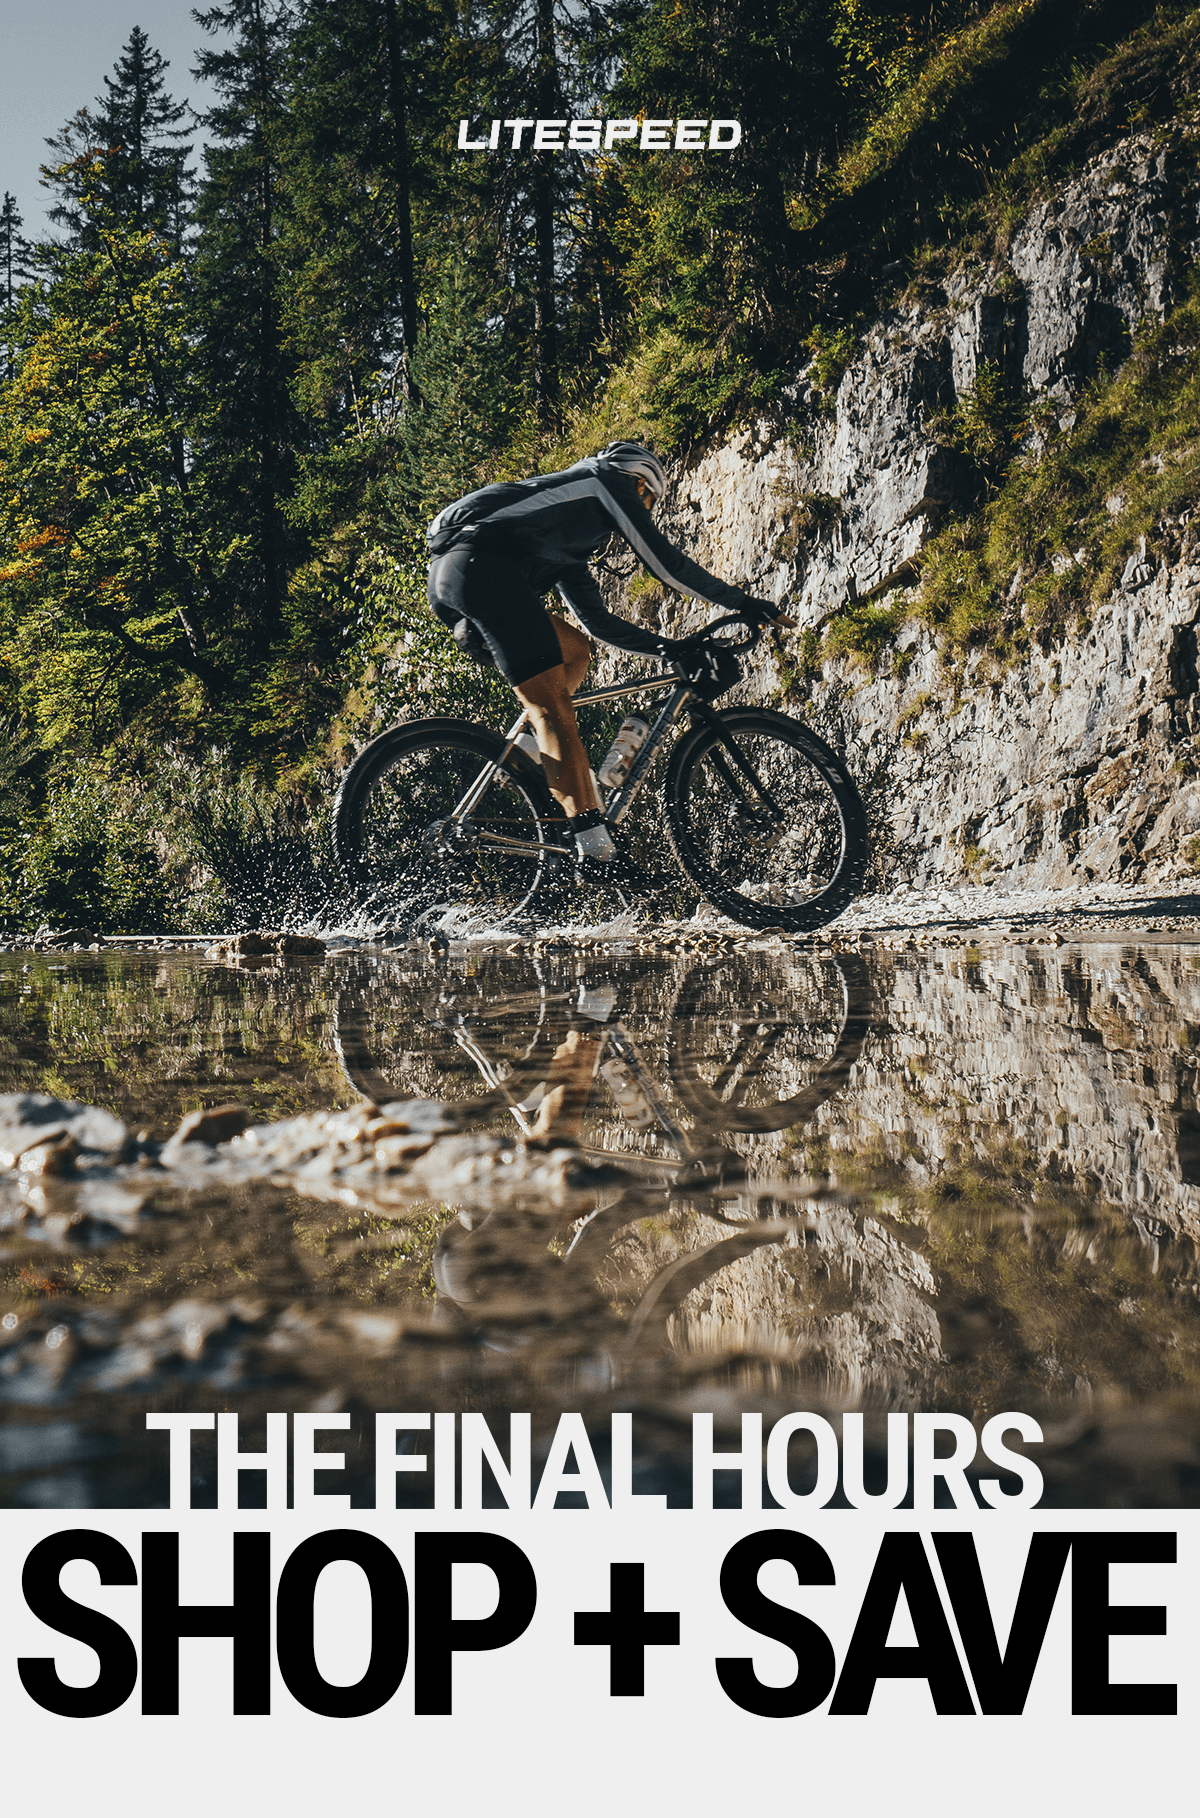 Litespeed's biggest sale of the year is coming to an end! Shop now and save up to $1975 on a new bike.